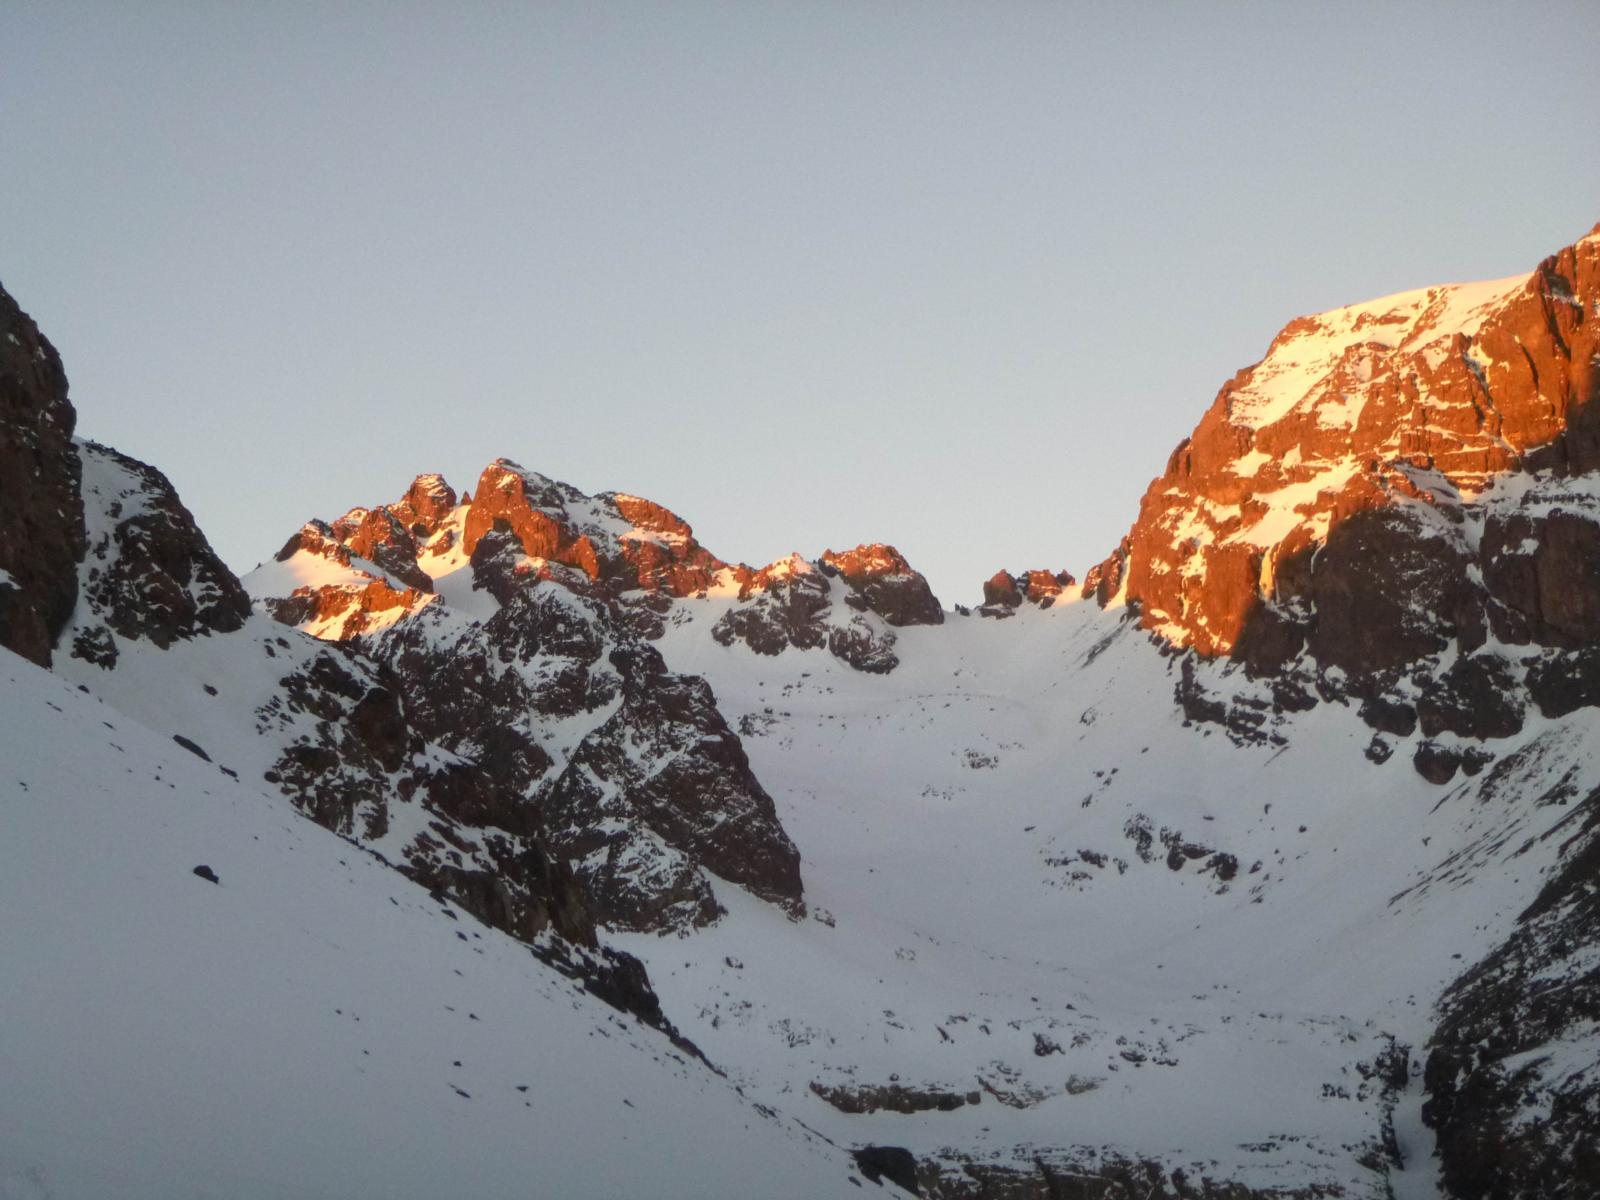 Foto de ATLAS INVERNAL: JBEL TOUBKAL (4167m) POR VIA NORMAL